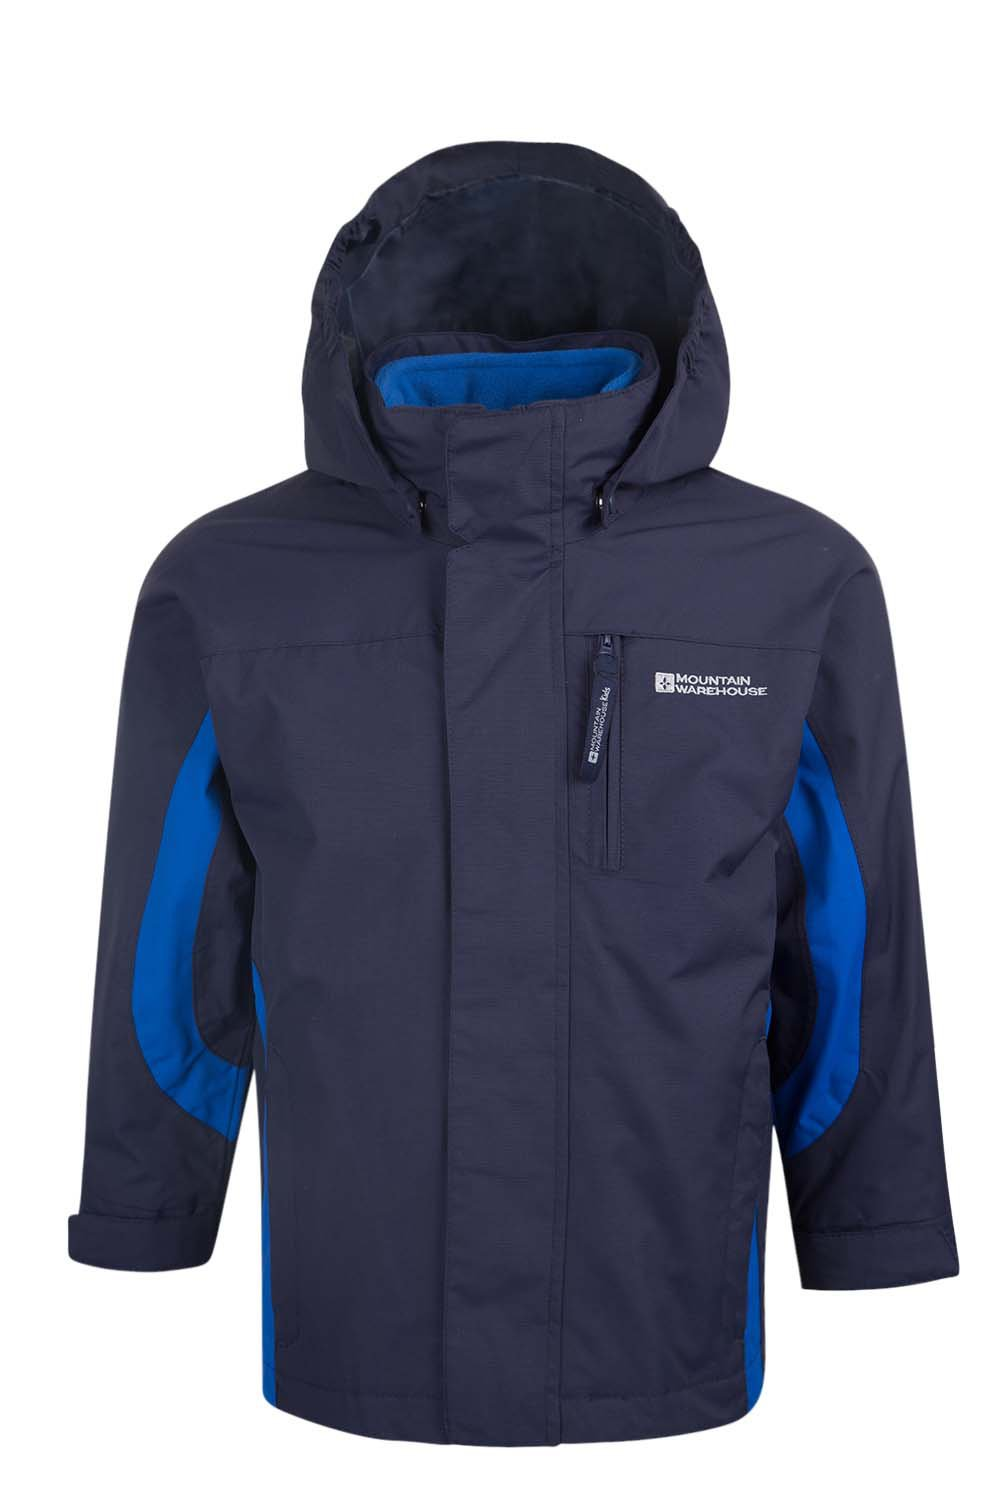 Mountain Warehouse CANNONBALL YOUTH 3 IN 1 JACKET